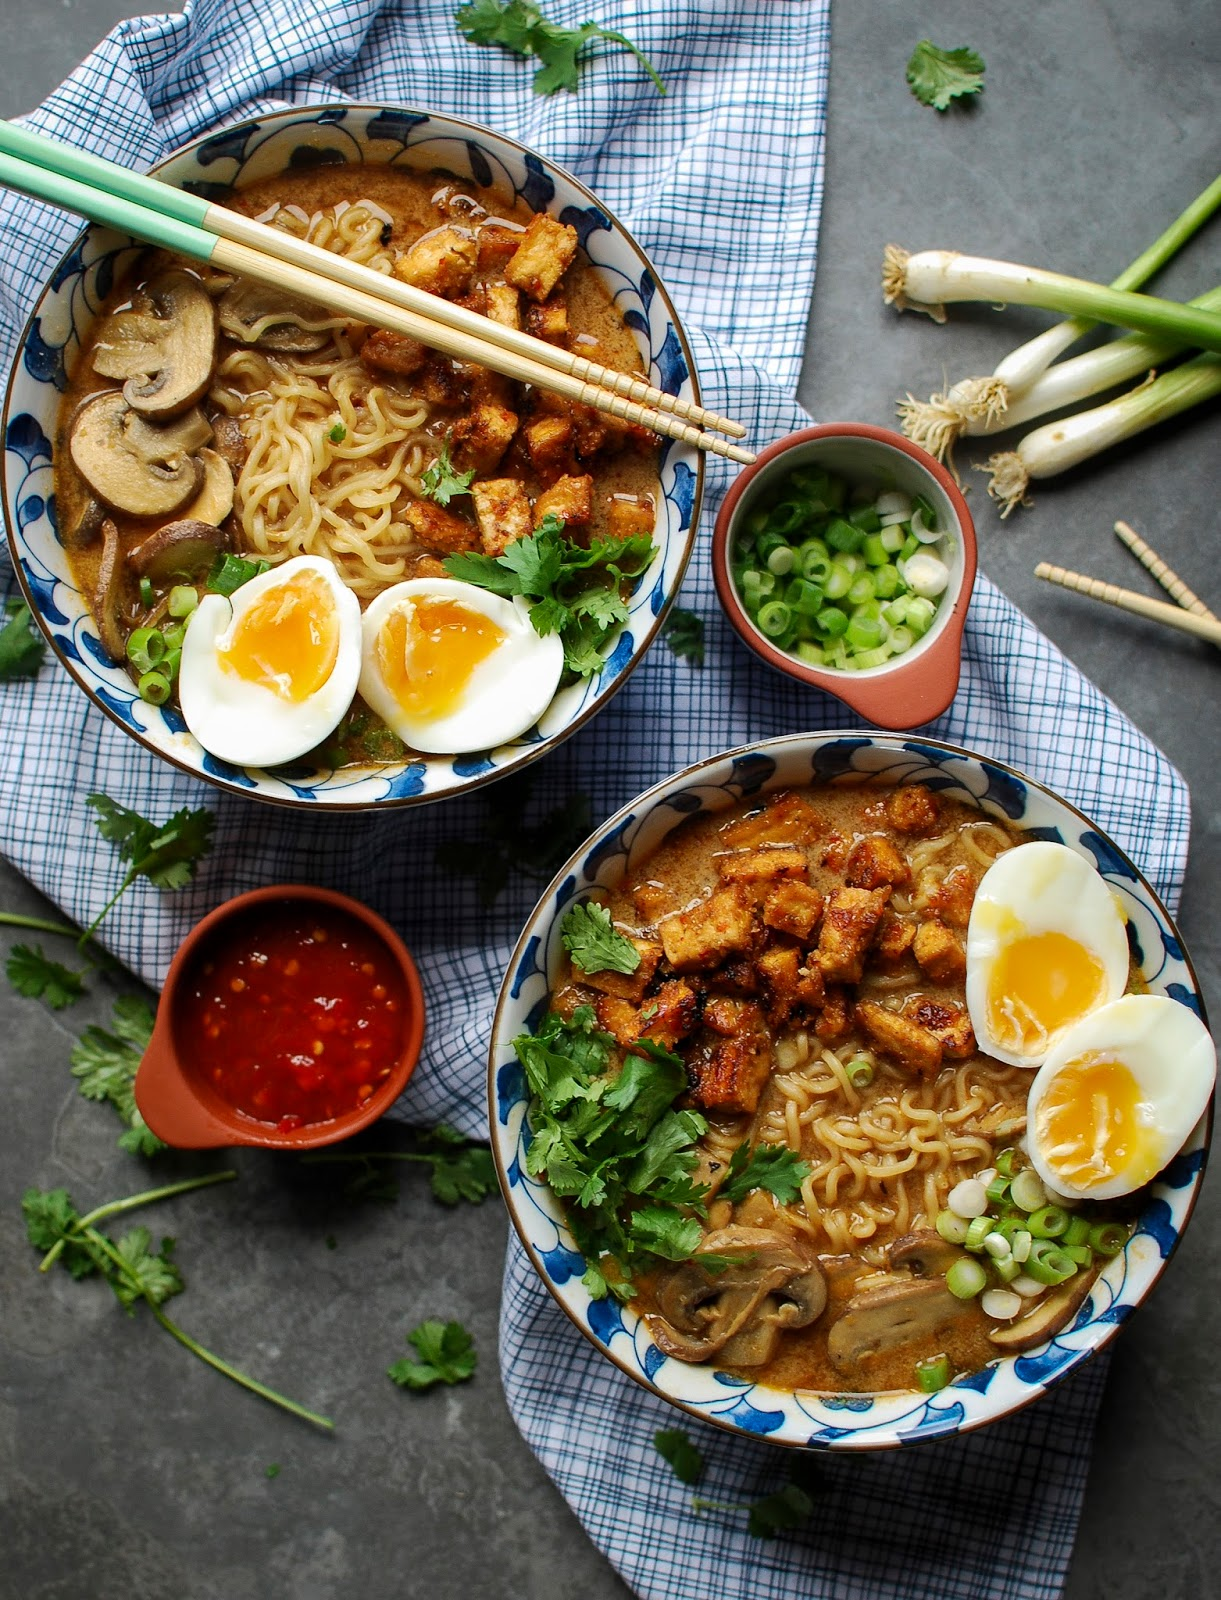 Crispy tofu pieces in a deliciously spiced broth topped off with a soft boiled egg. What's not to love?!